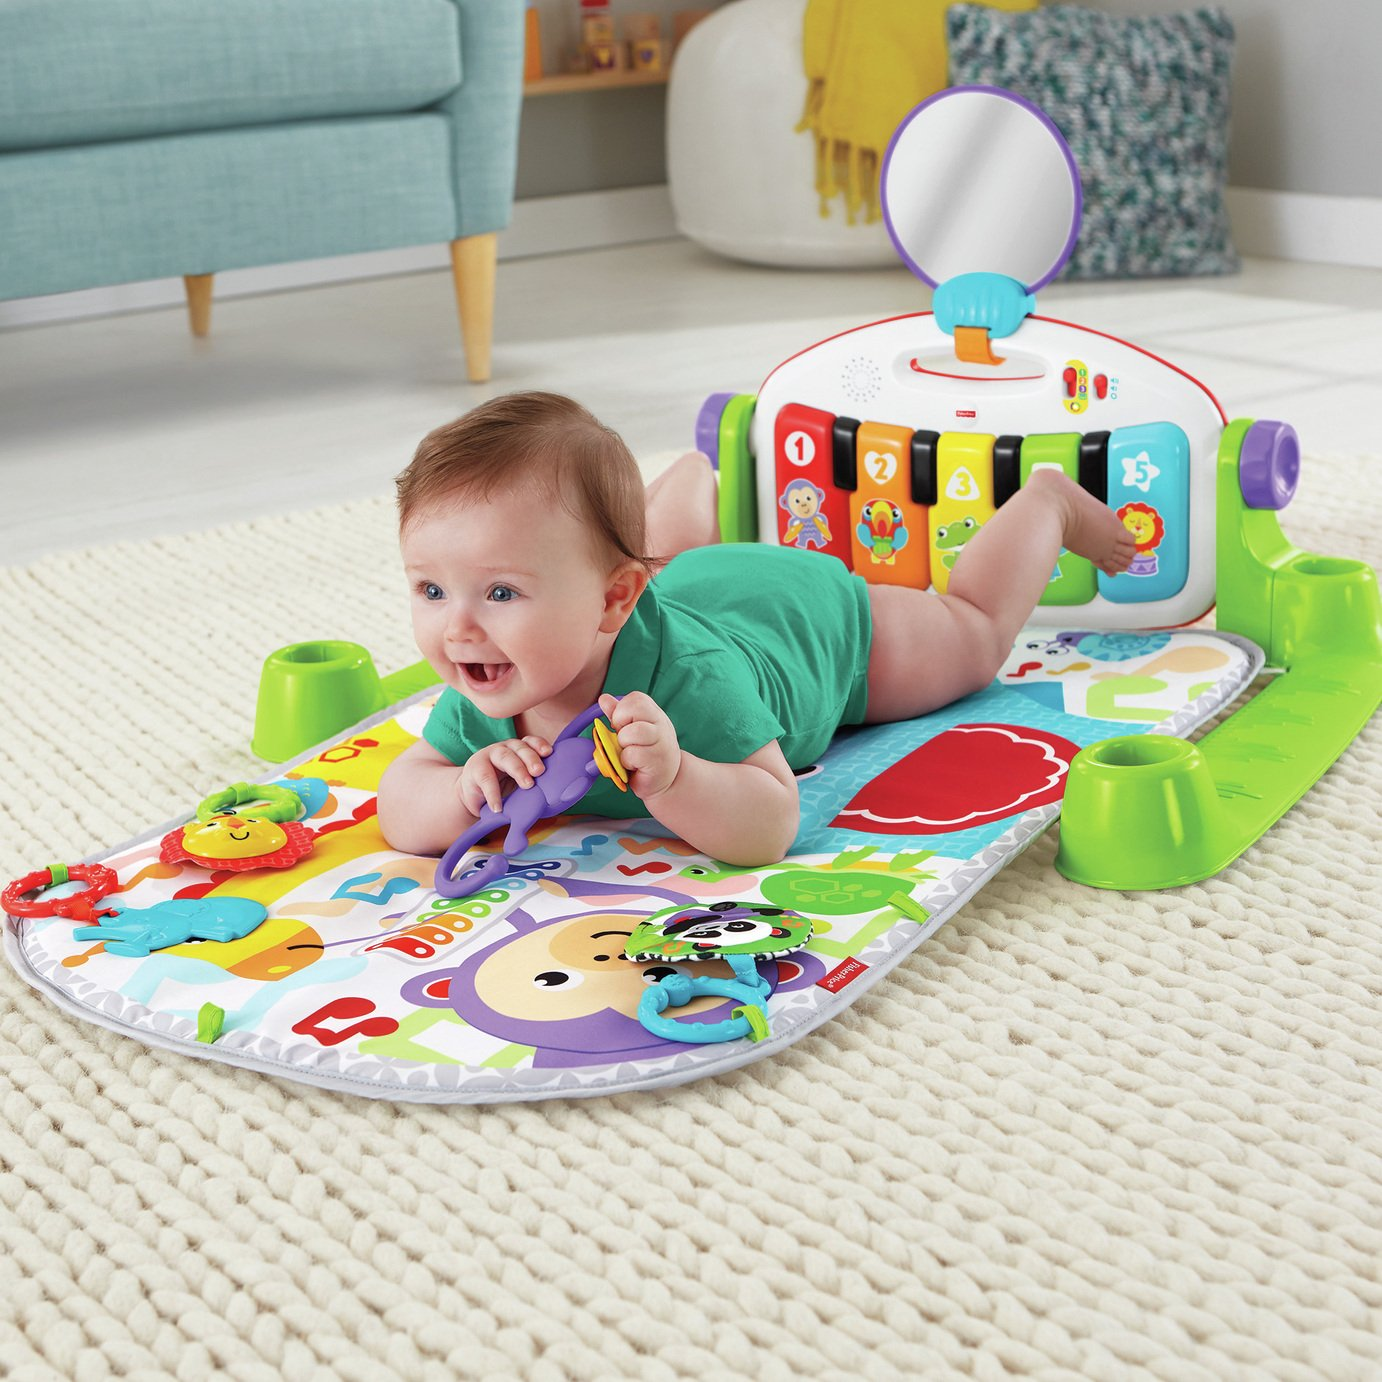 Fisher-Price Kick 'n' Play Piano Baby Gym